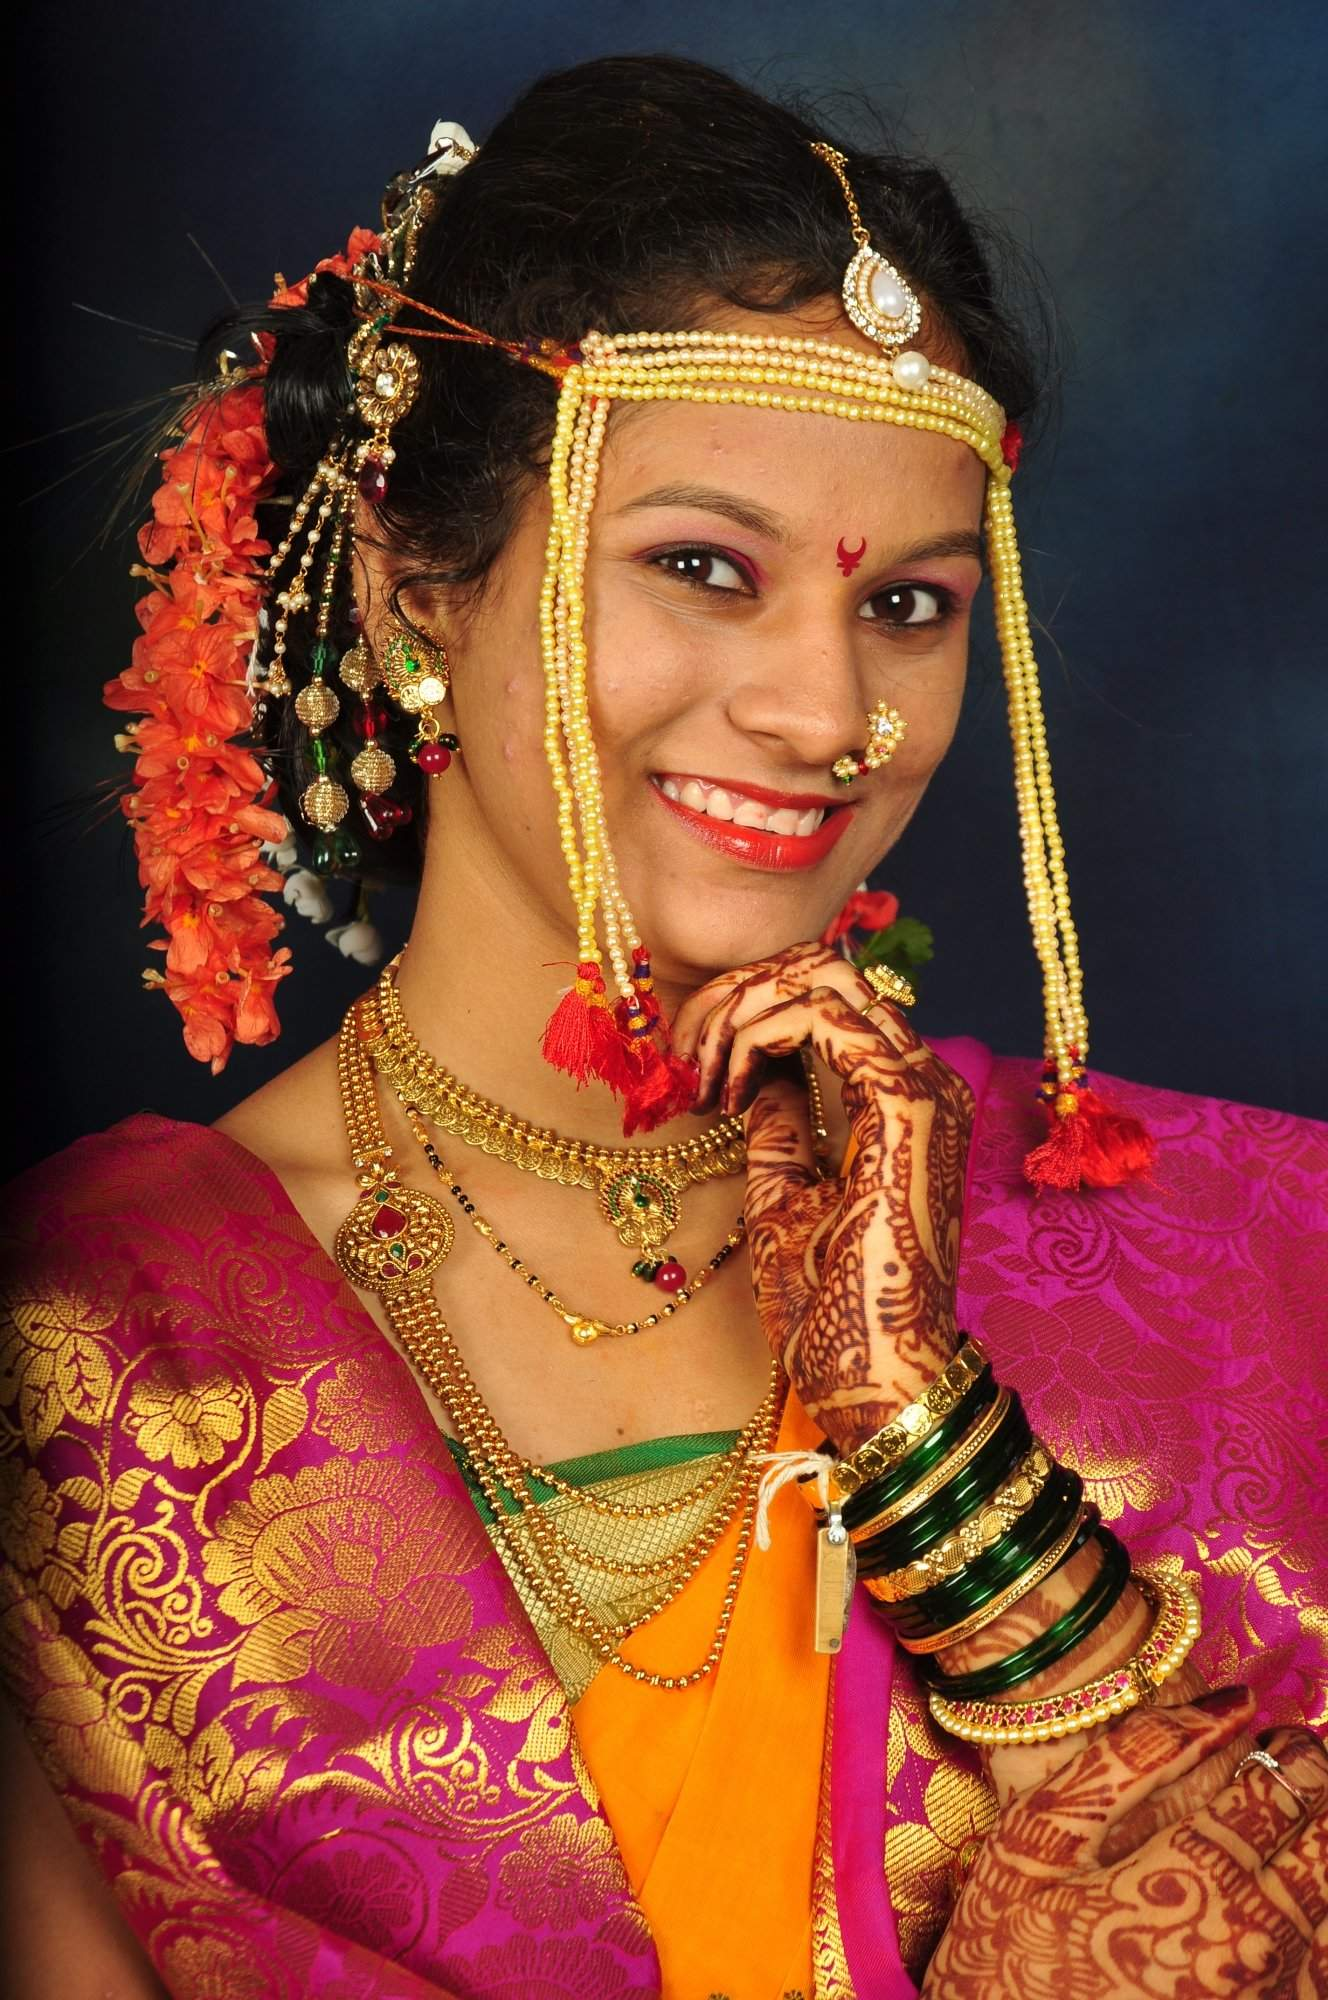 Top 100 Beautician Services At Home in Mumbai - Best Beautician For